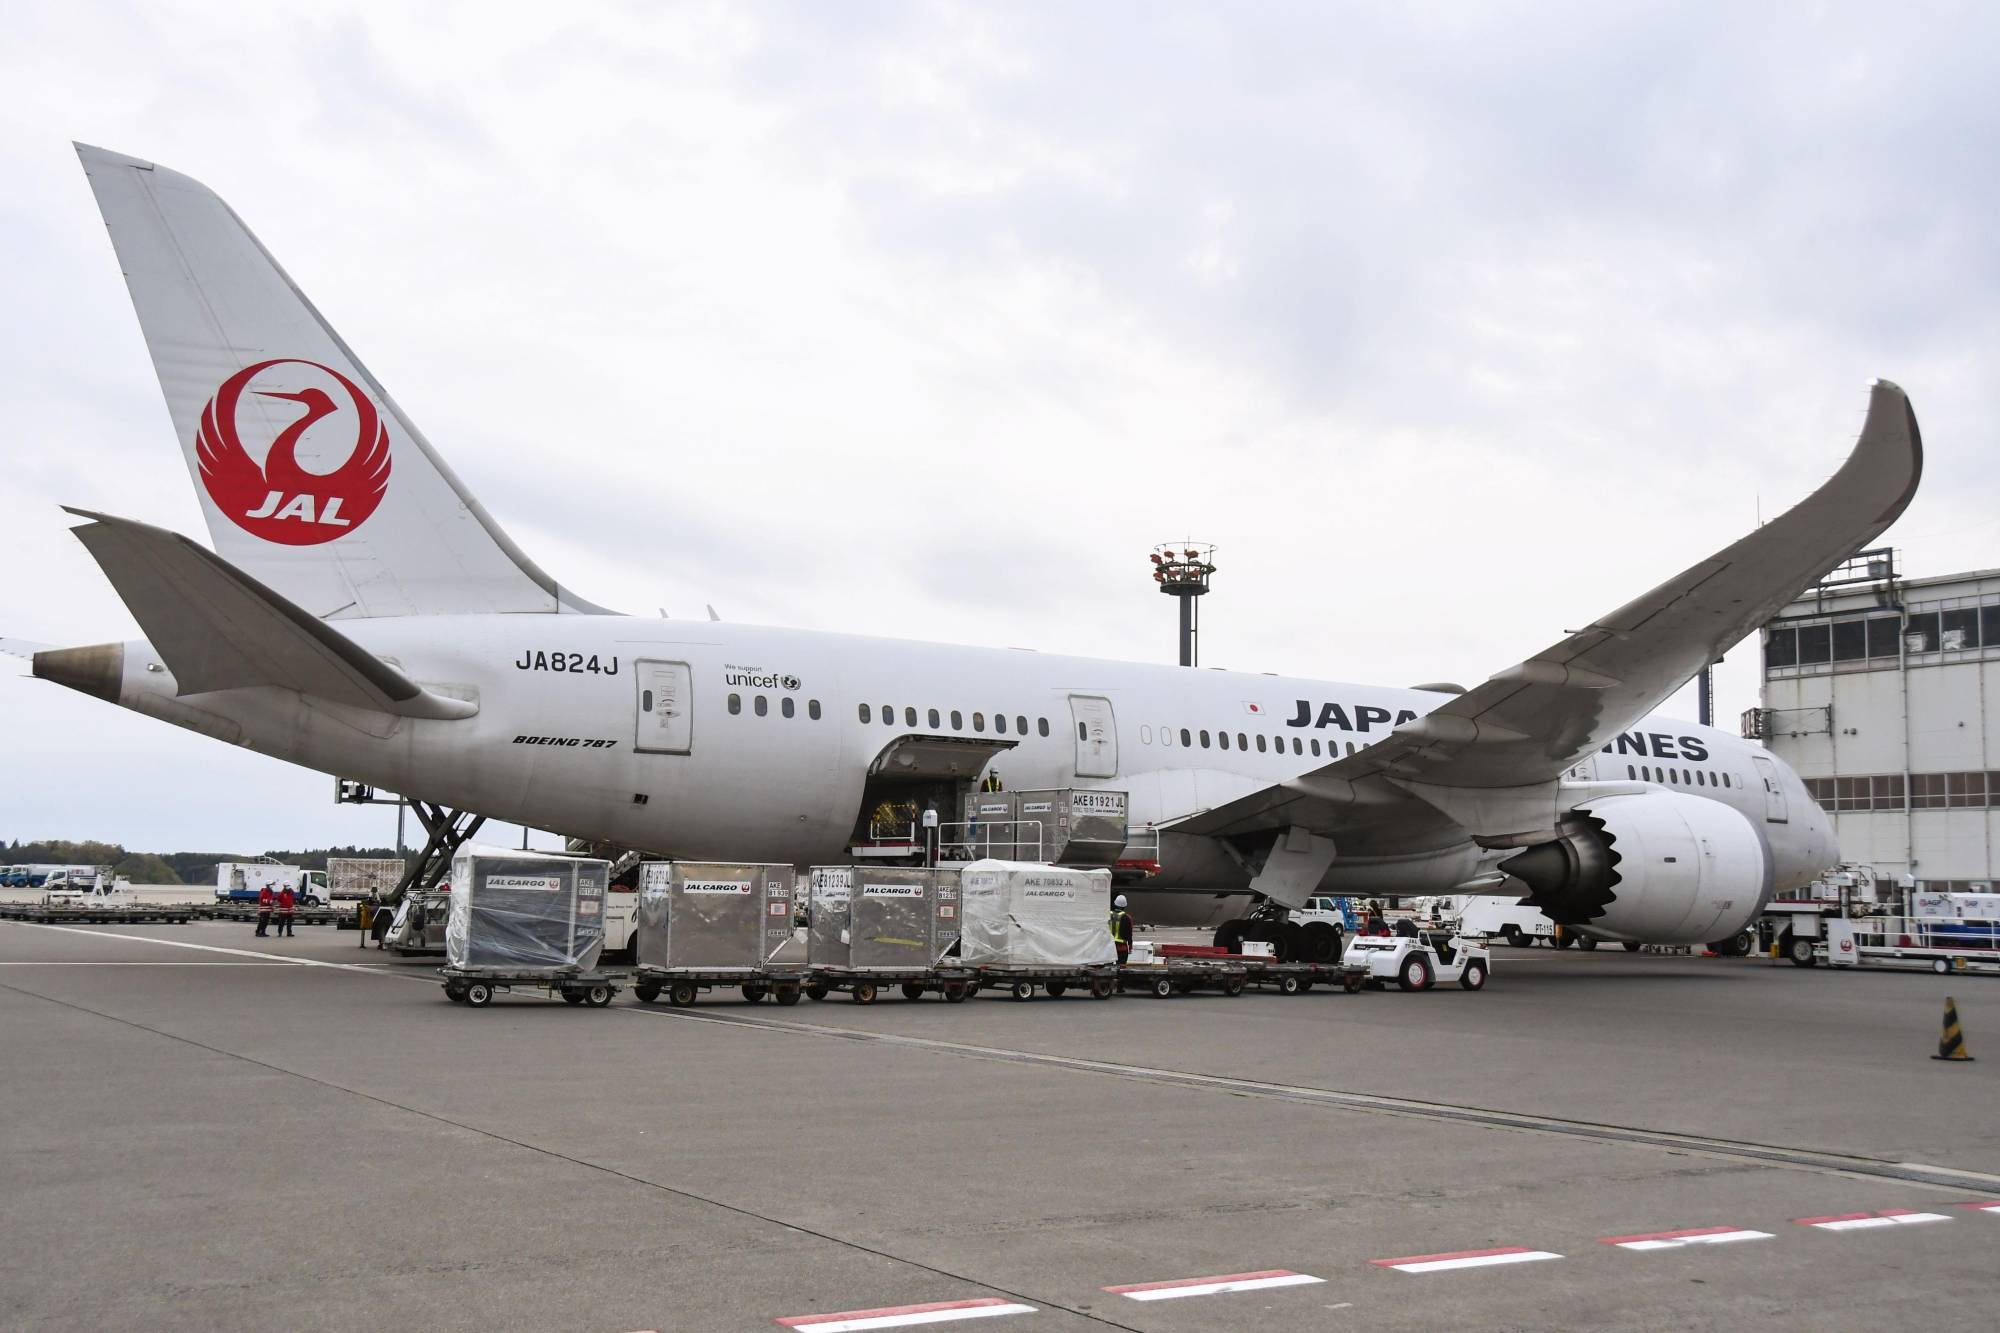 A Japan Airlines plane unloads cargo at Narita Airport near Tokyo on April 17, after flying from Shanghai without passengers amid the coronavirus outbreak.   KYODO